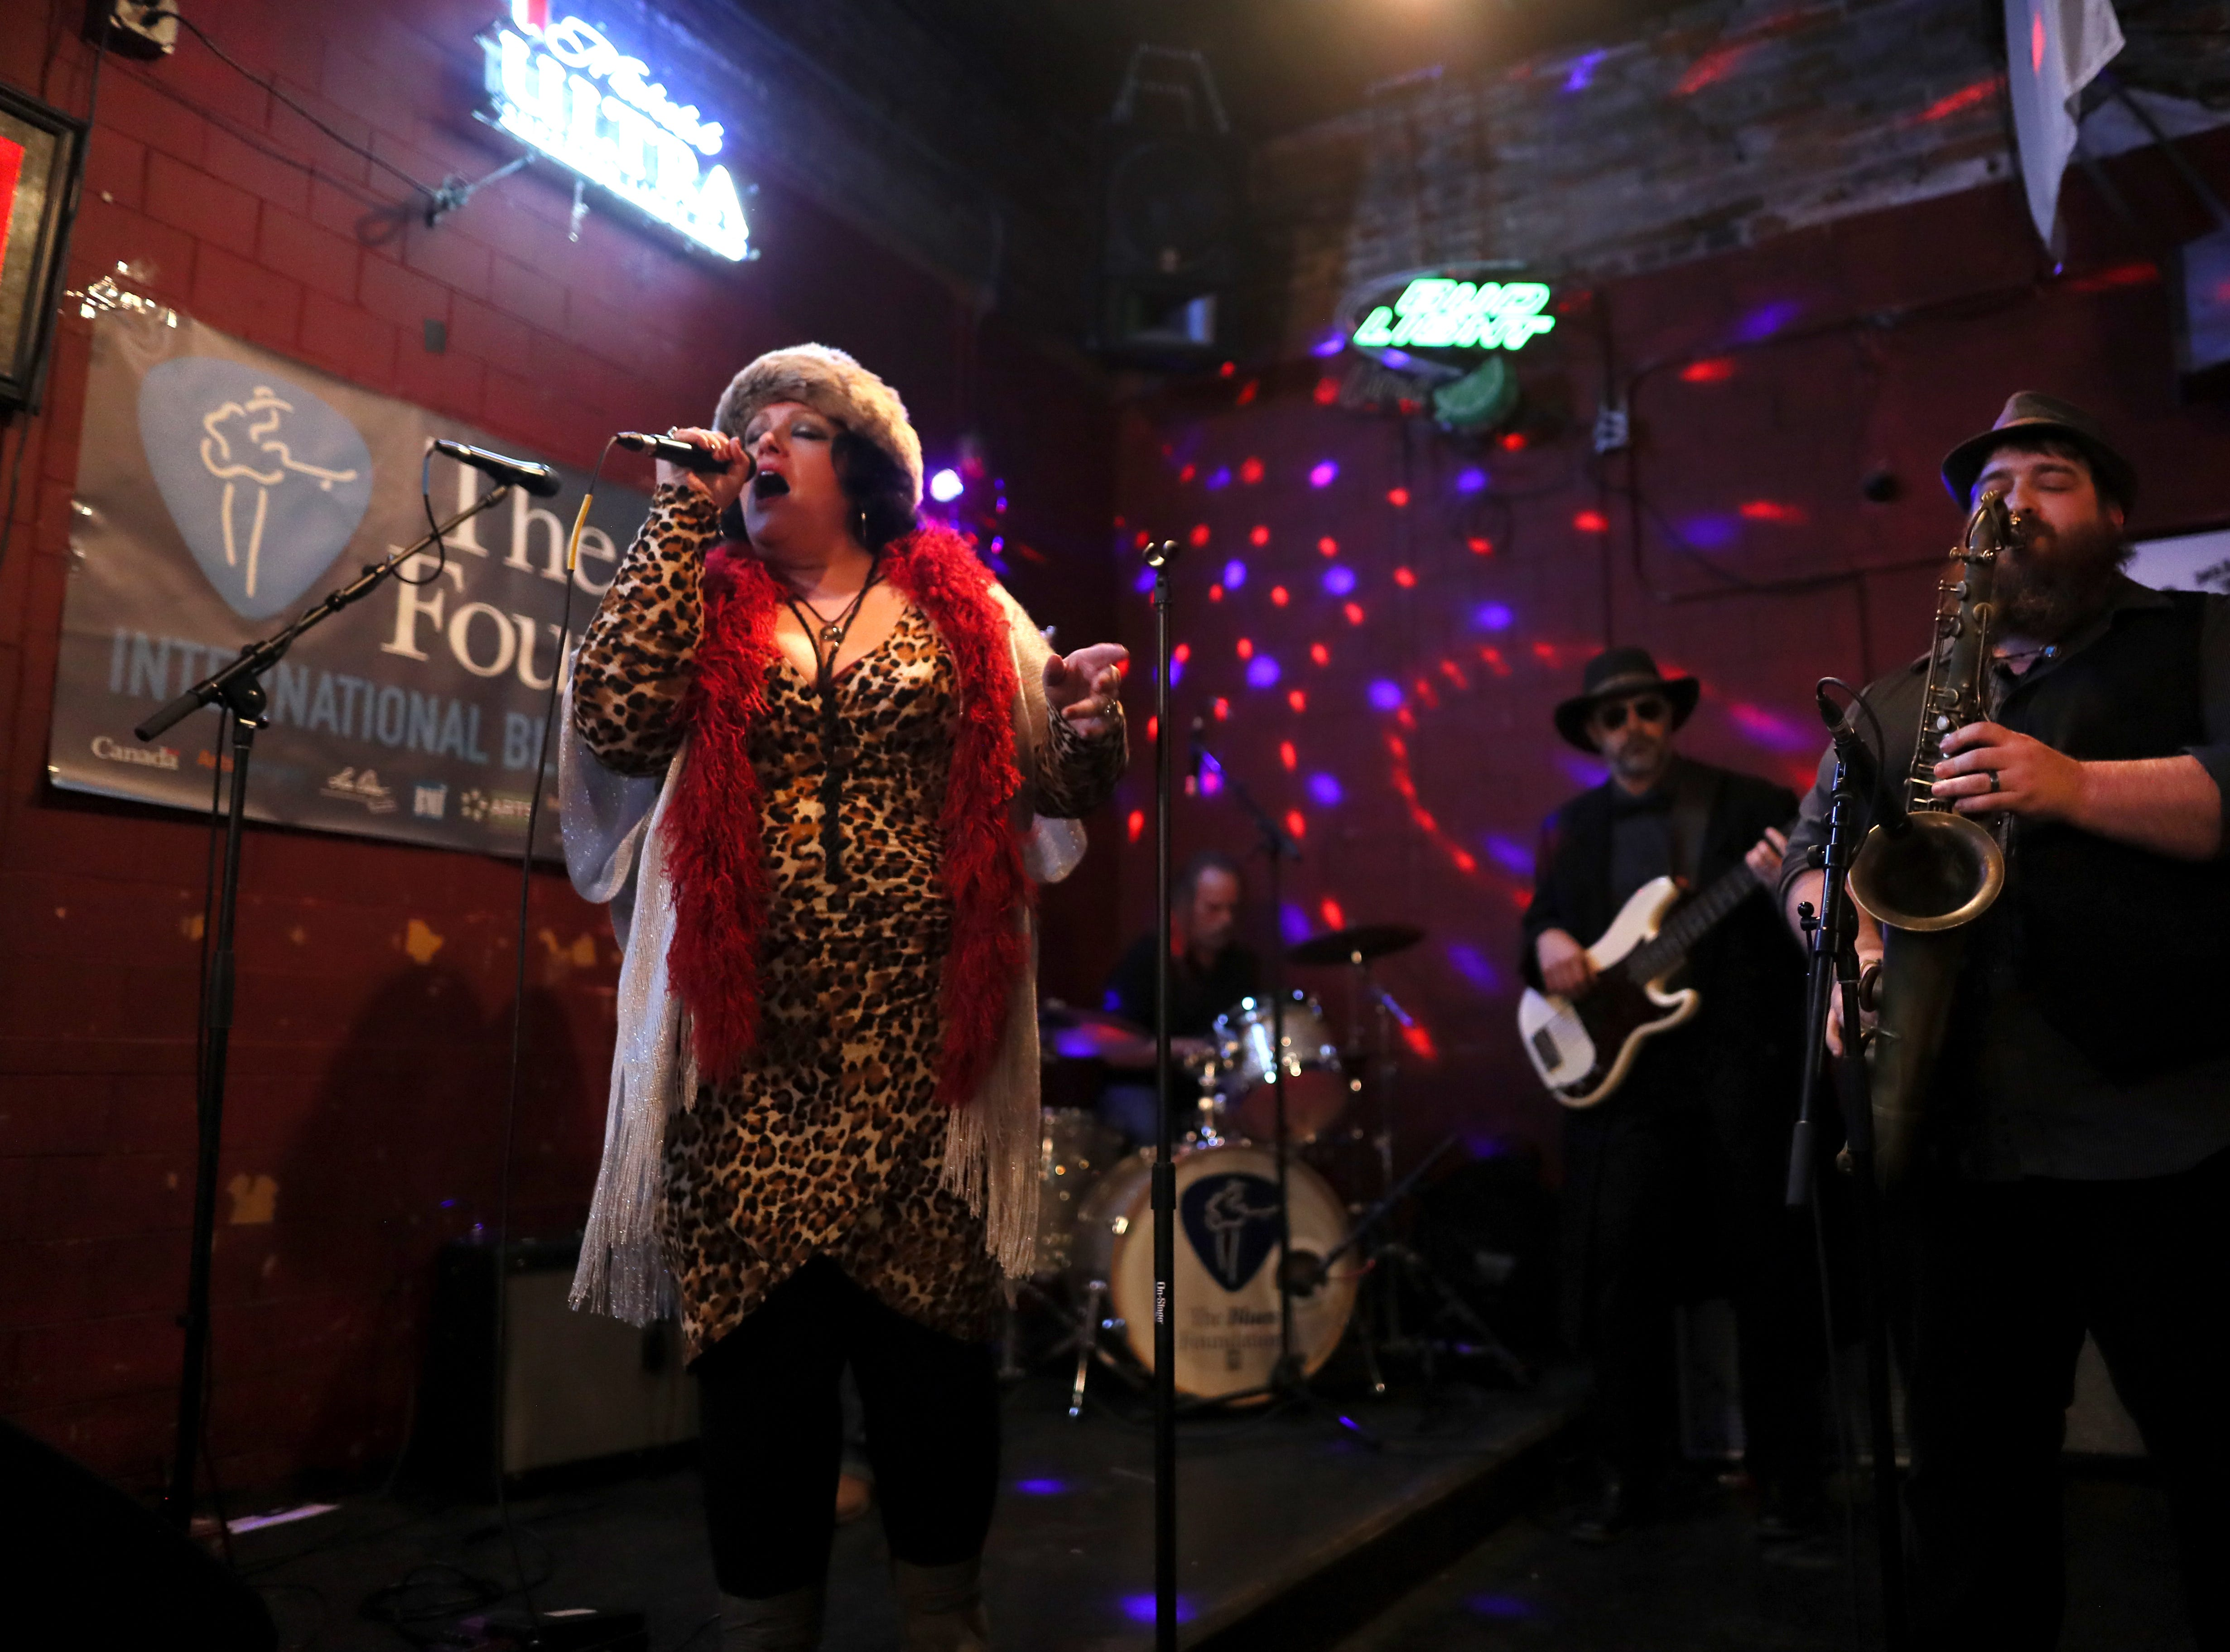 Charlotte Taylor & Gypsy Rain plays at Coyote Ugly during the 35th International Blues Challenge on Beale Street Thursday, Jan. 24, 2019.